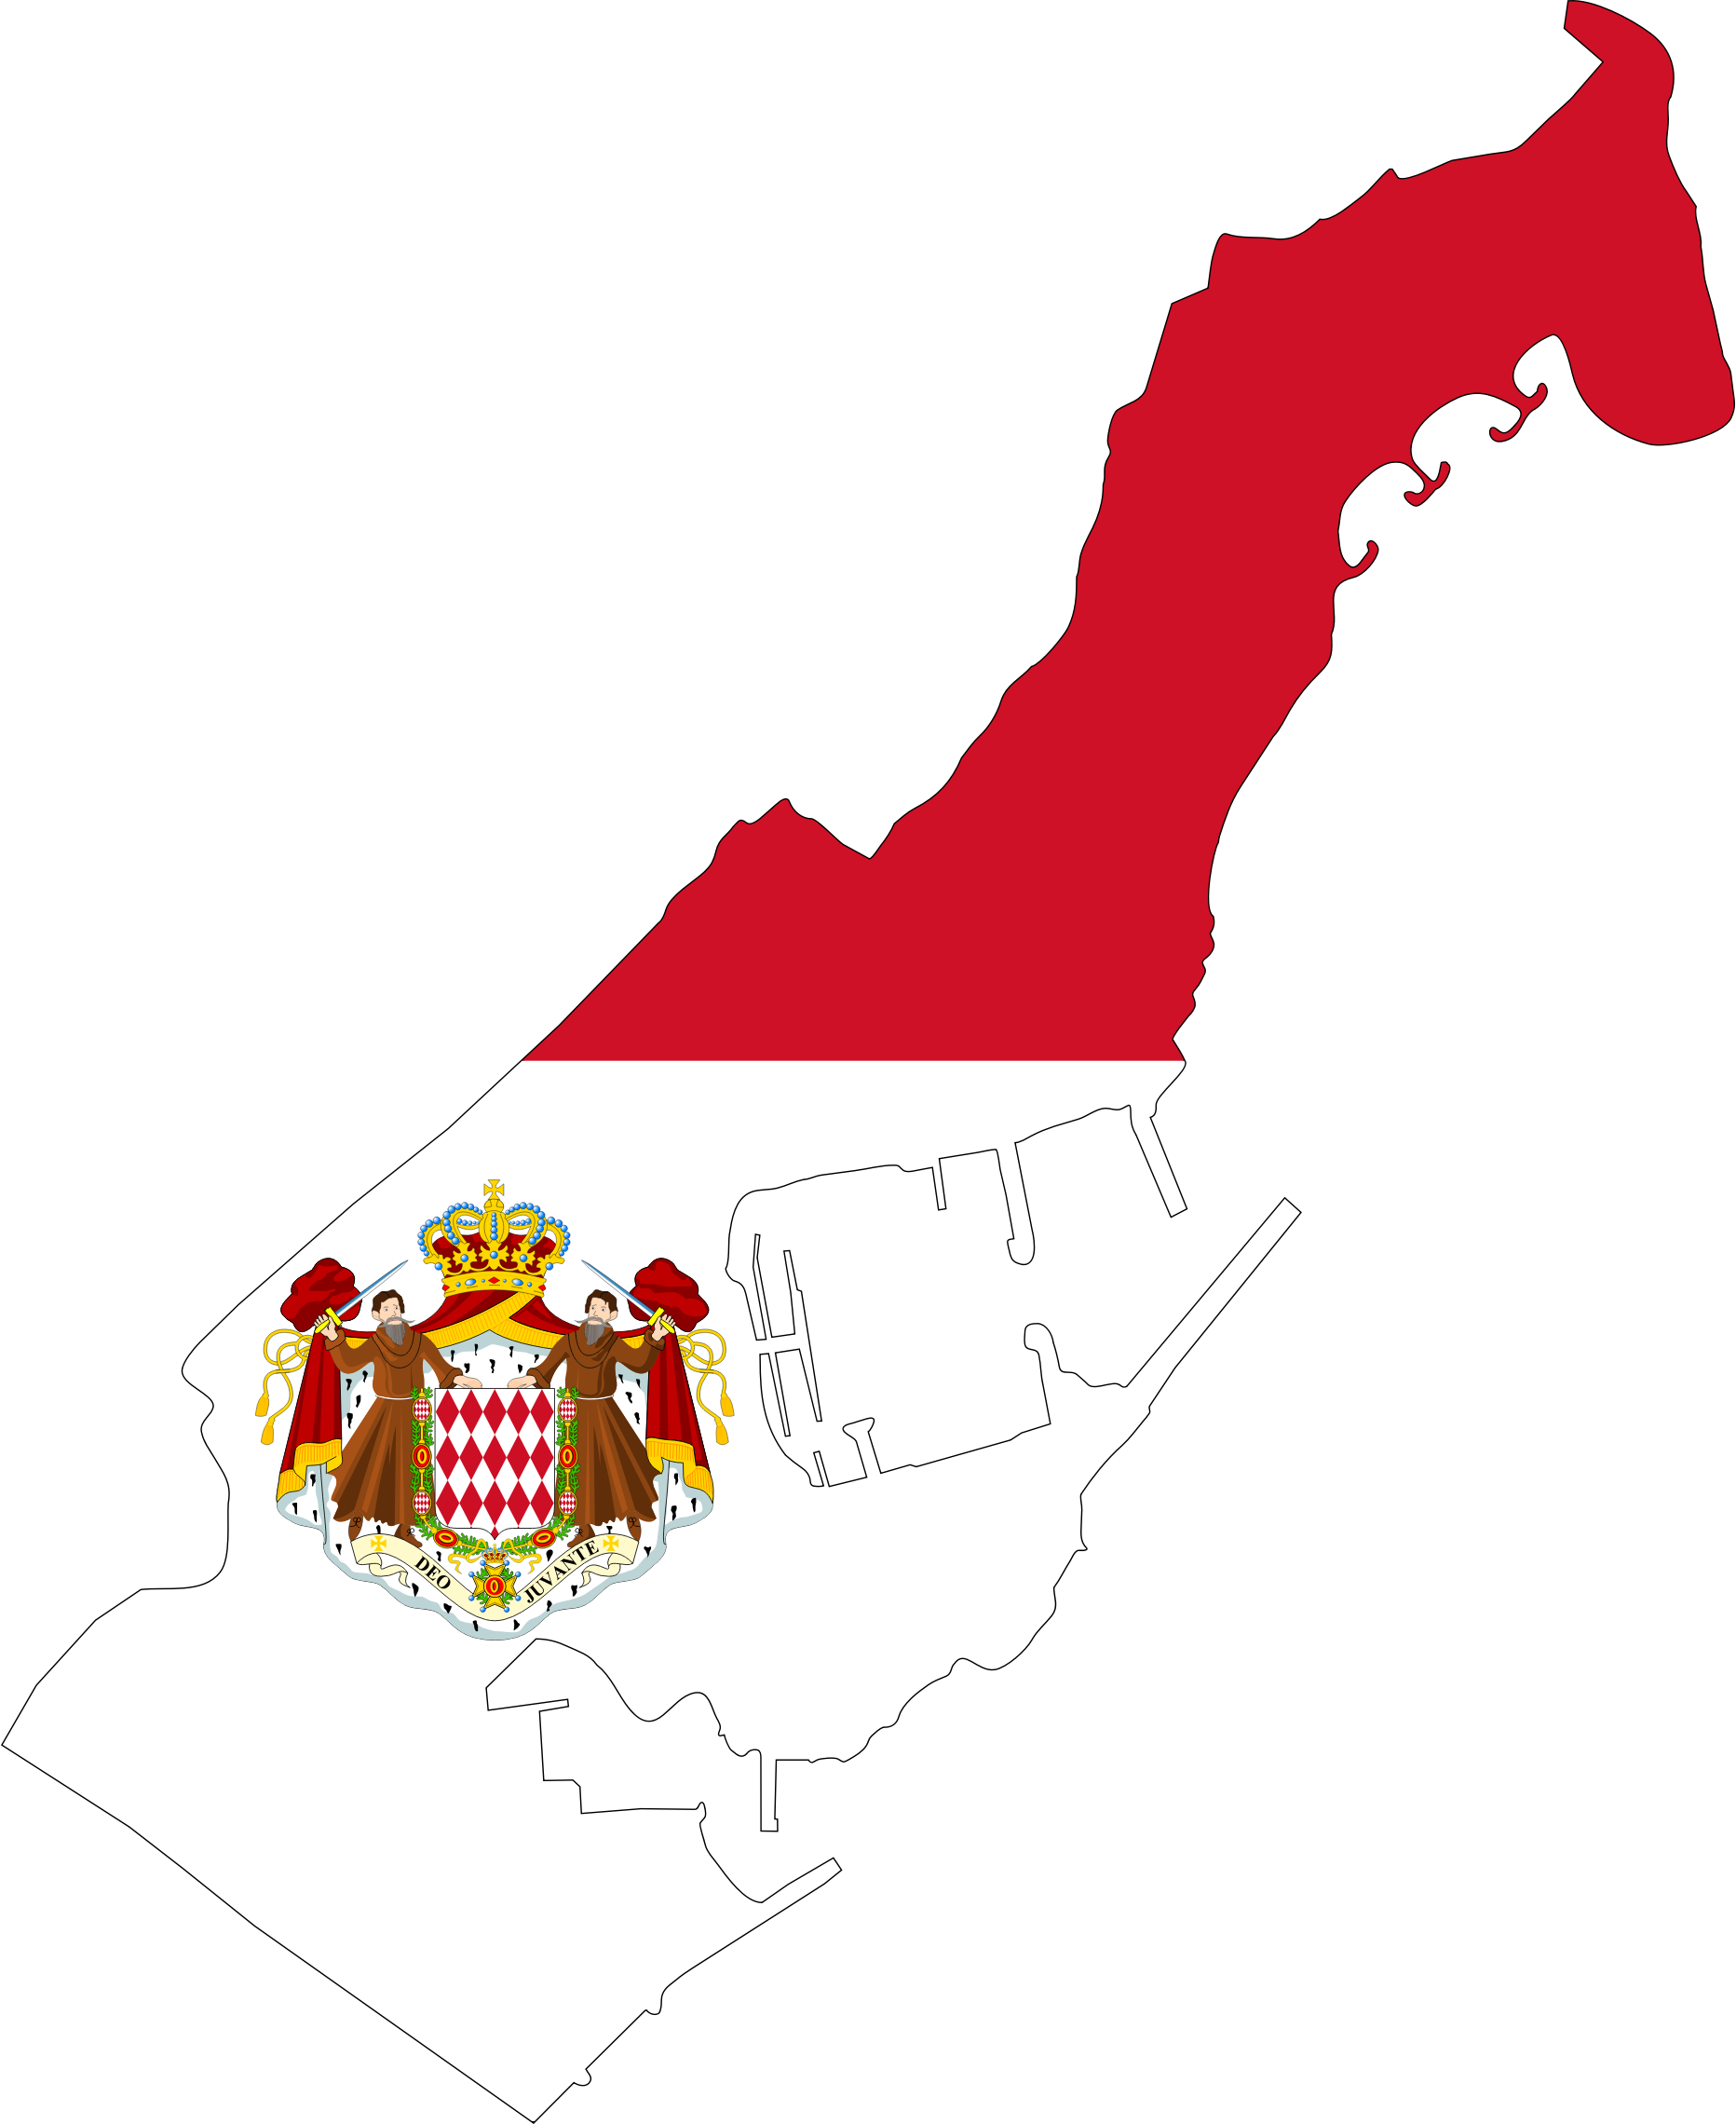 Monaco Map Flag With Coat Of Arms by GDJ